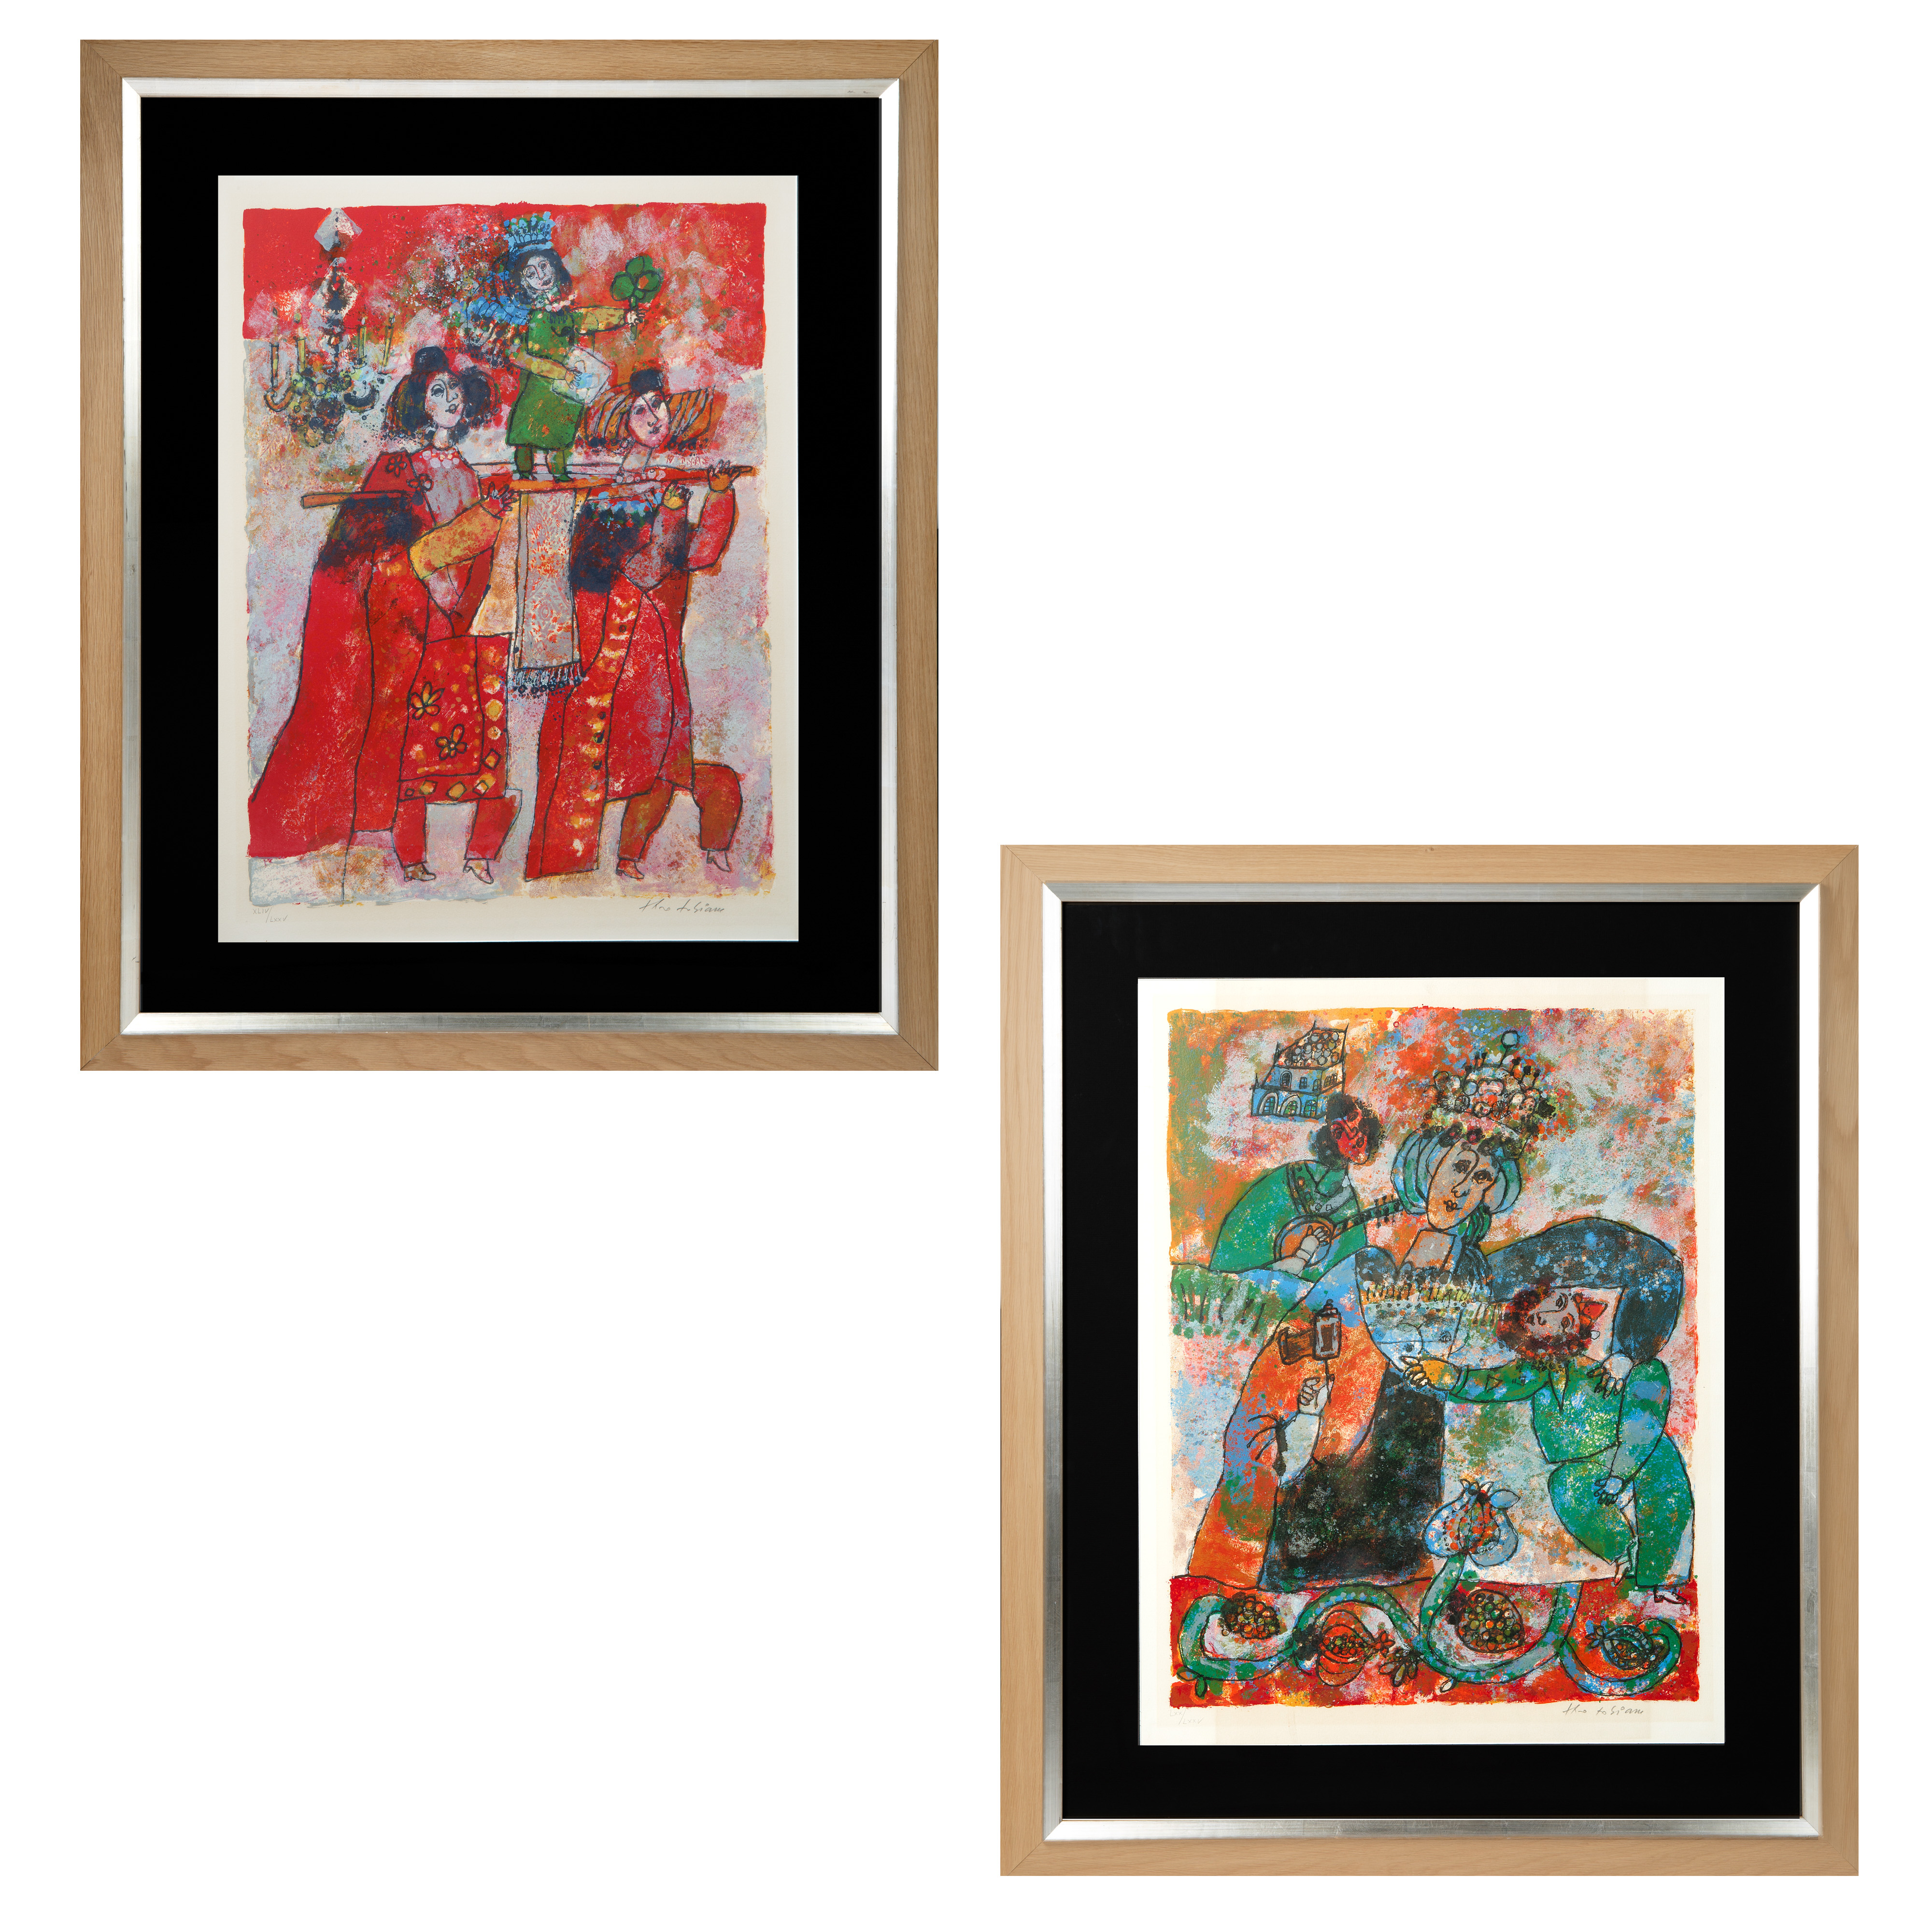 A PAIR OF LITHOGRAPHS BY THEO TOBIASSE (FRENCH 1927-2012)